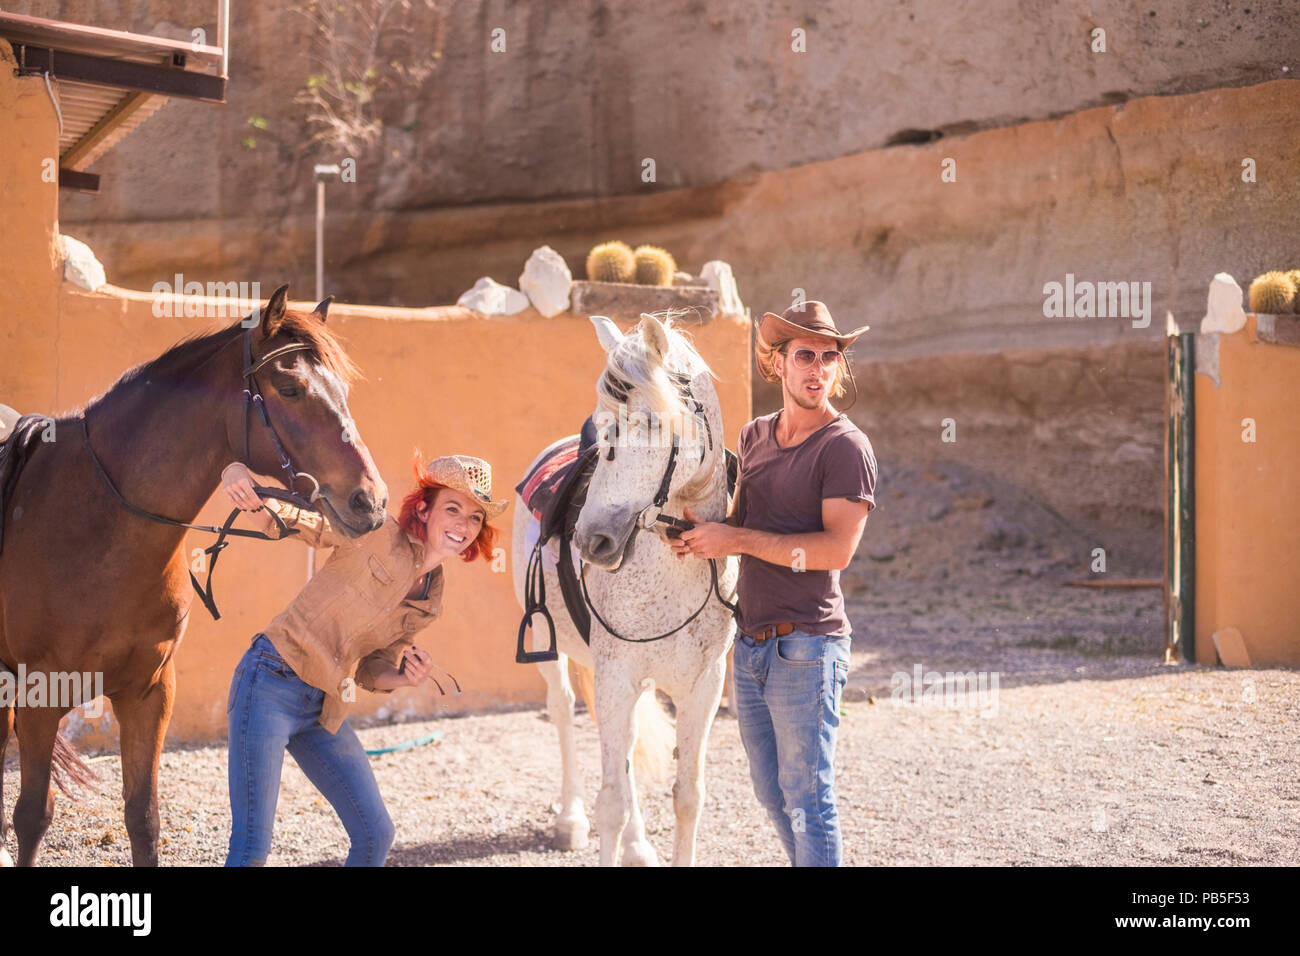 two horses and two caucasian young man and woman couple ready to ride and enjoy the sunny day. natural and alternative lifestyle to enjoy nature and a - Stock Image